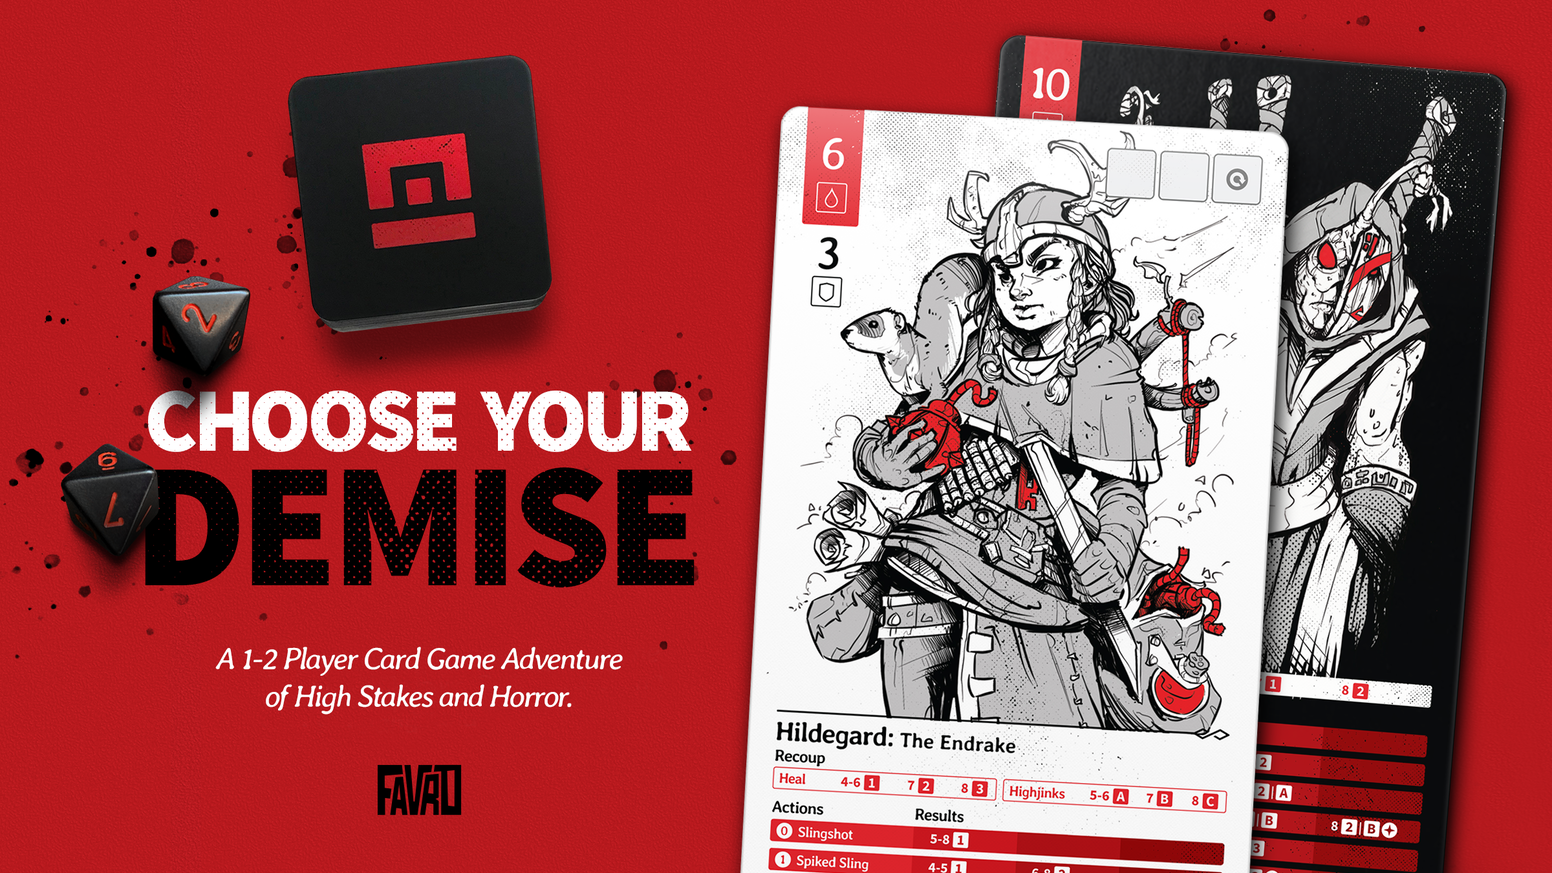 A harrowing card game adventure with enemy encounters, interactive story-driven scenarios, and high-end art and design.